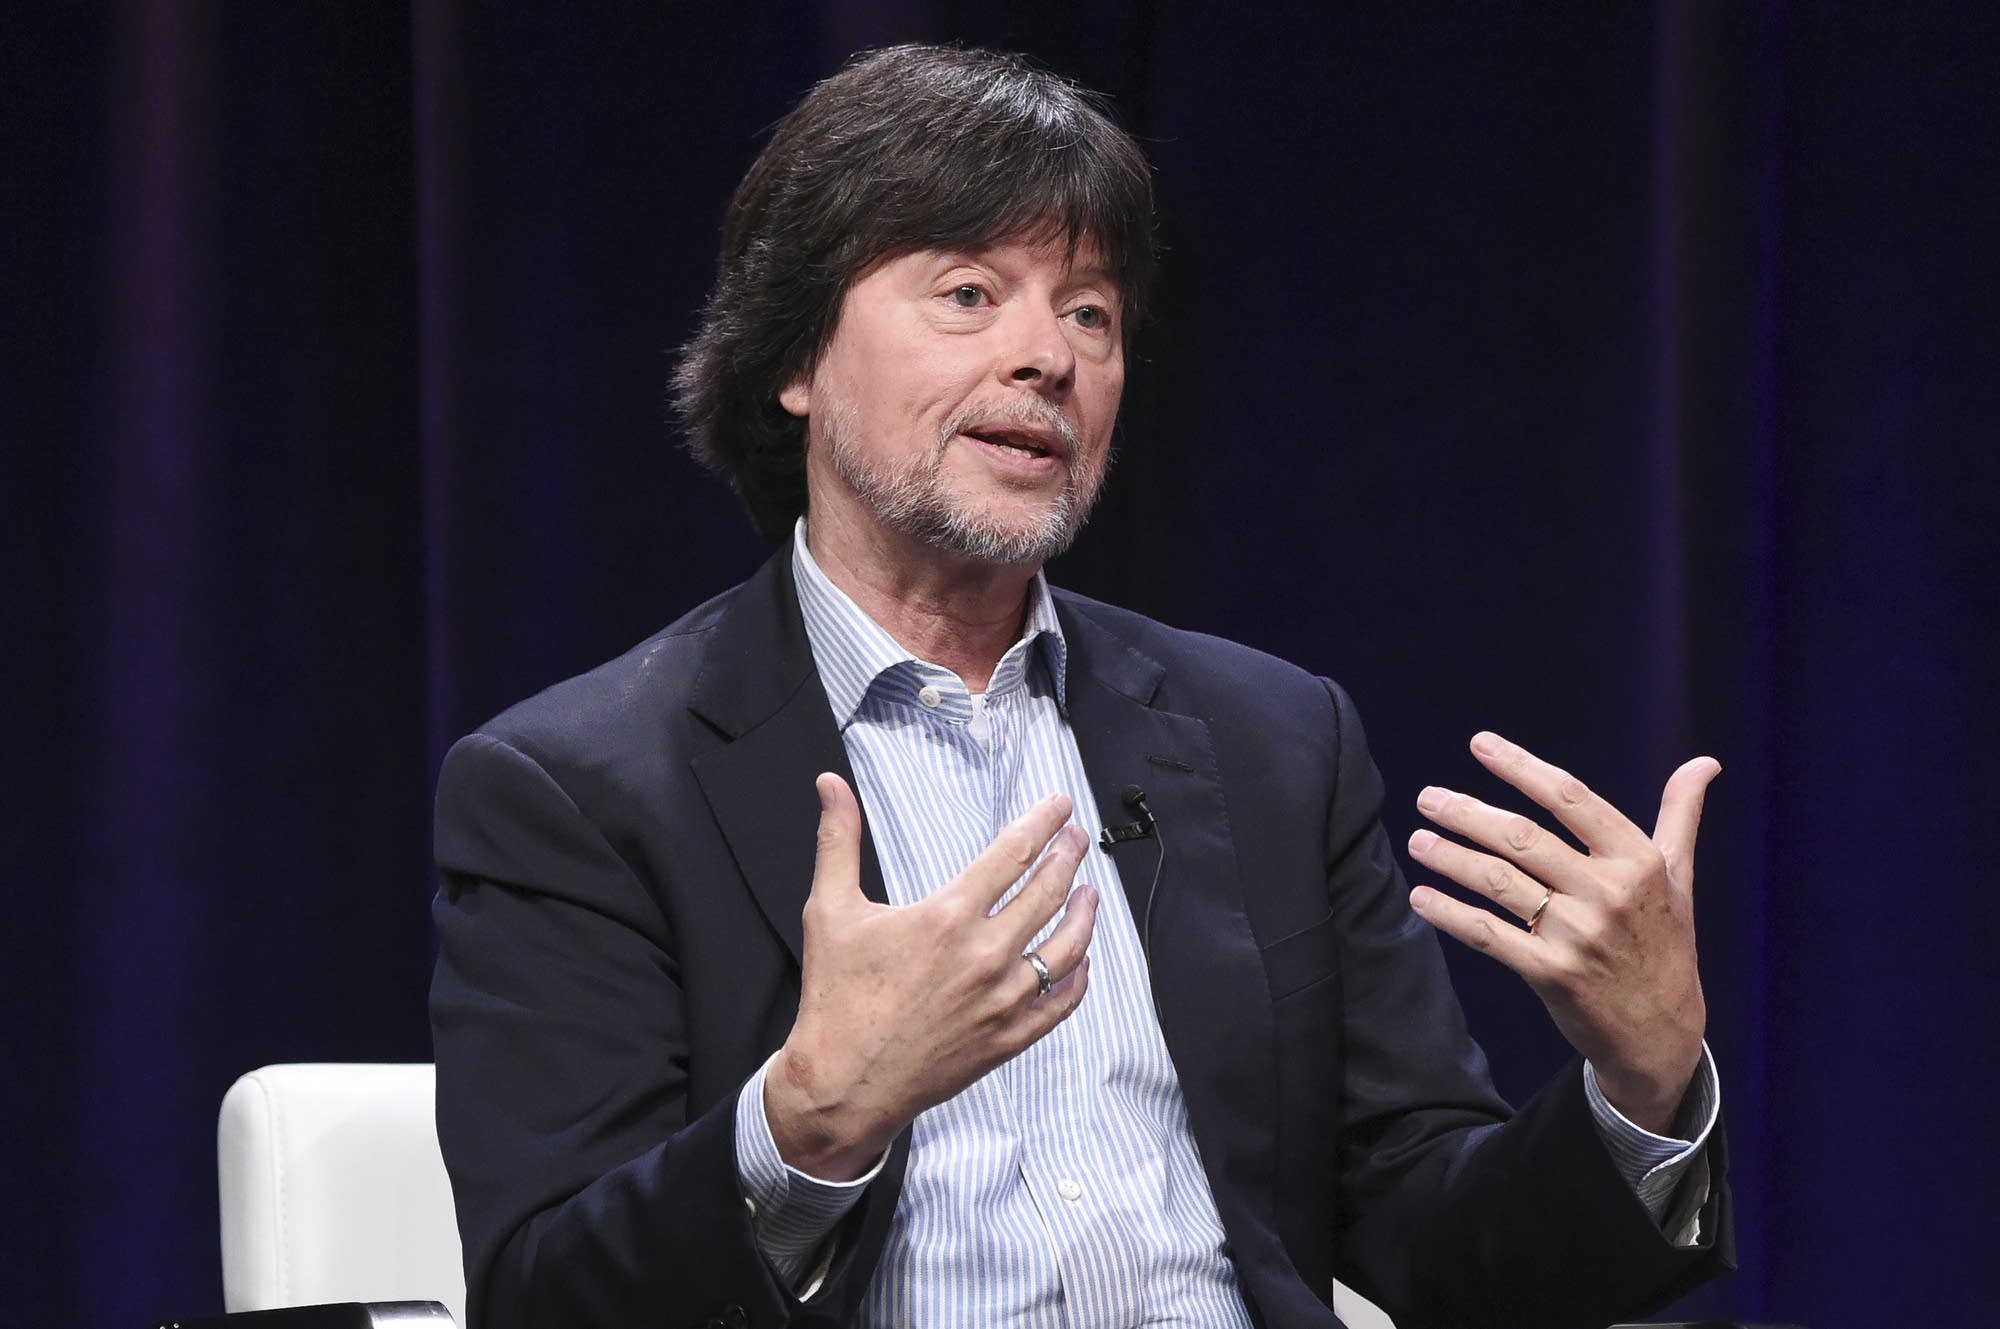 Ken Burns participates in a